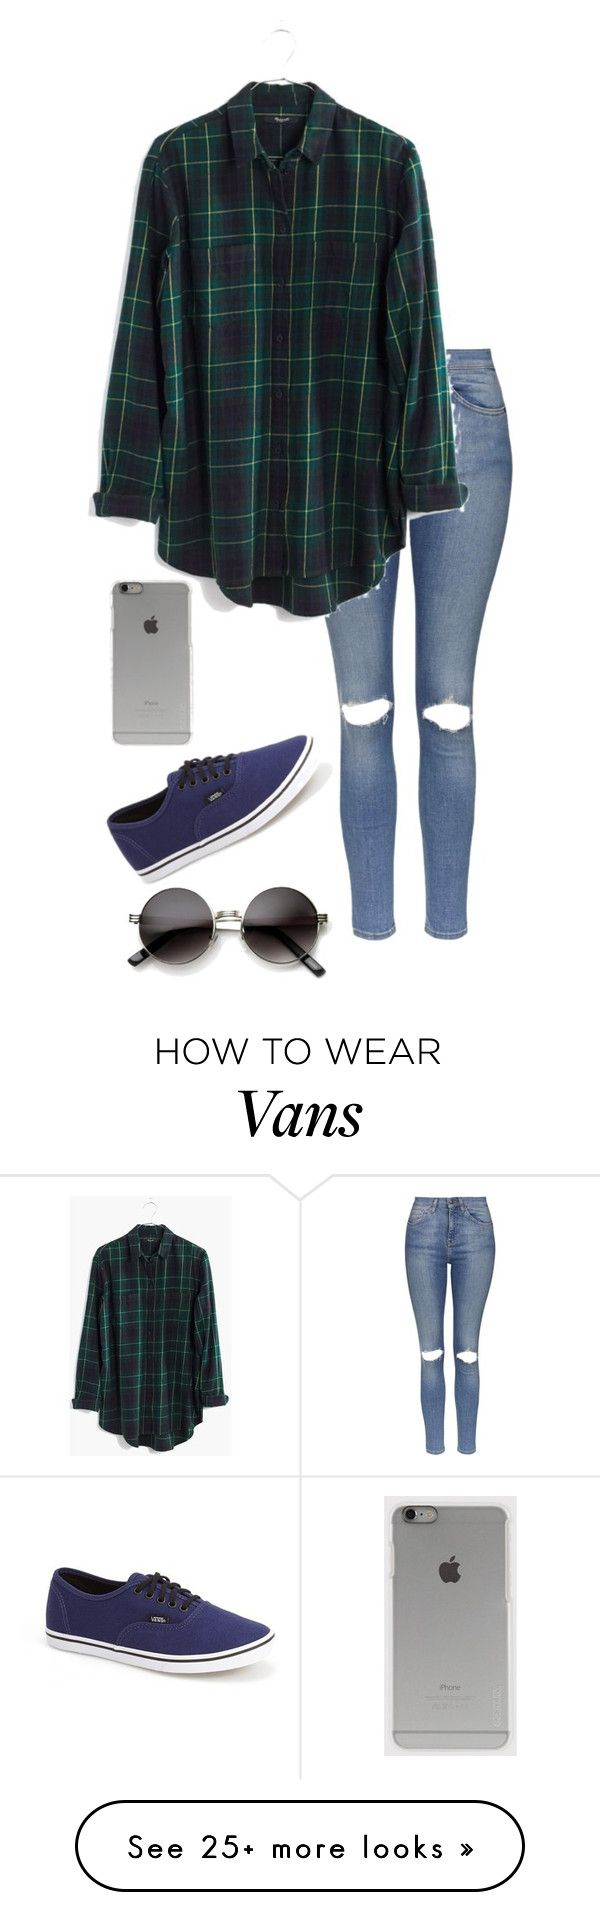 """Untitled #536"" by batgirl-373 on Polyvore featuring Topshop, Madewell, Vans and Incase"